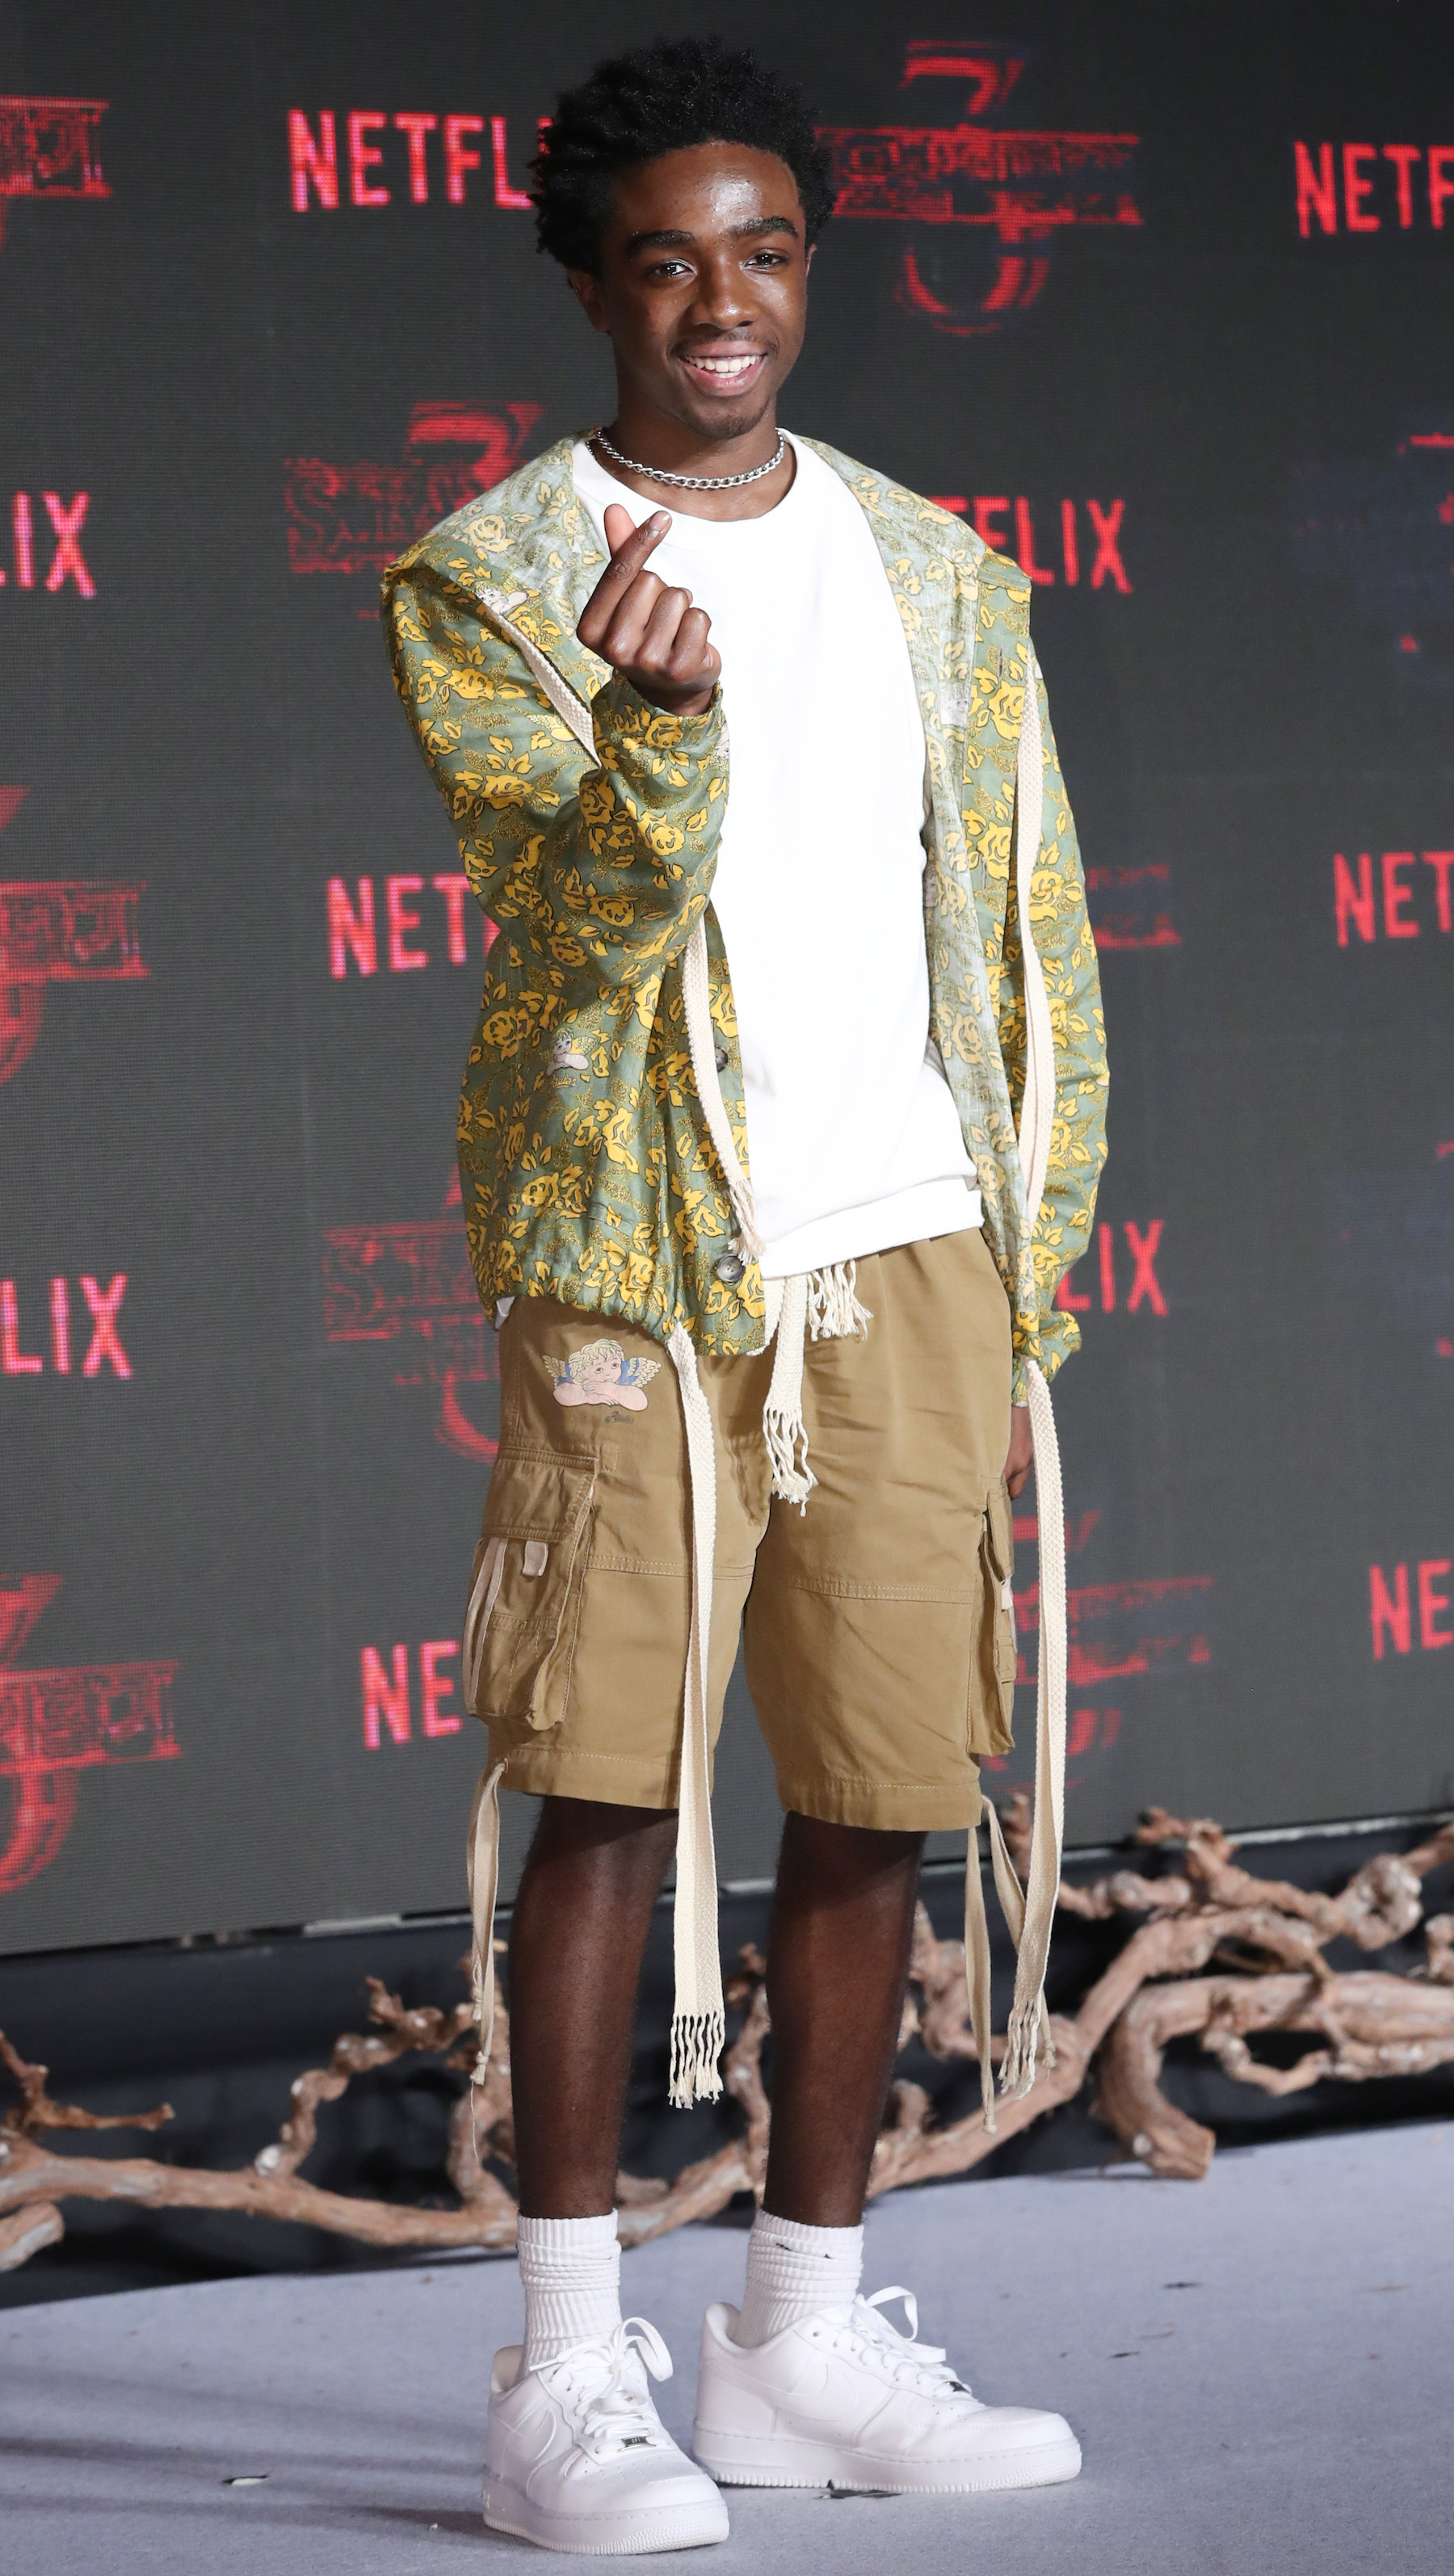 Caleb is at a premiere wearing a zip-up hoodie, t-shirt, and cargo shorts.